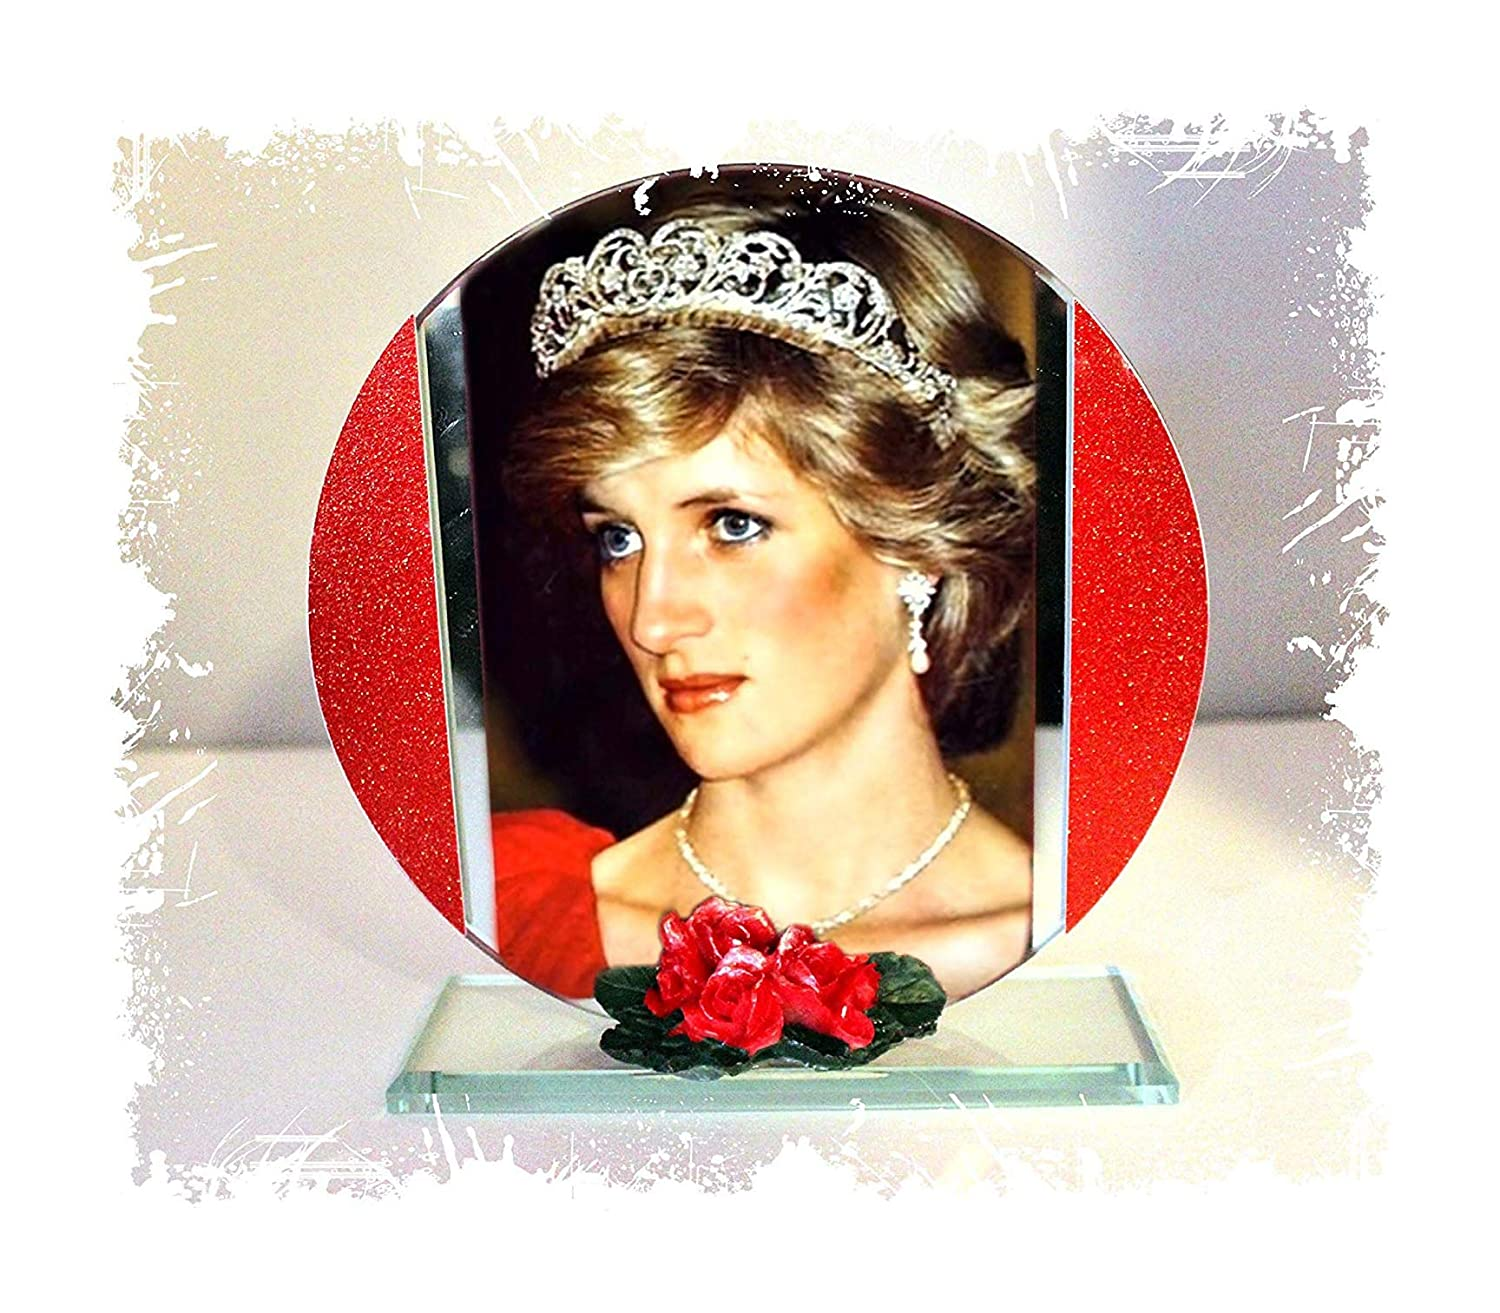 Cellini Plaques Princess Diana, English Rose, Photo Cut Glass Round Frame Plaque & Red Roses, Limited Edition